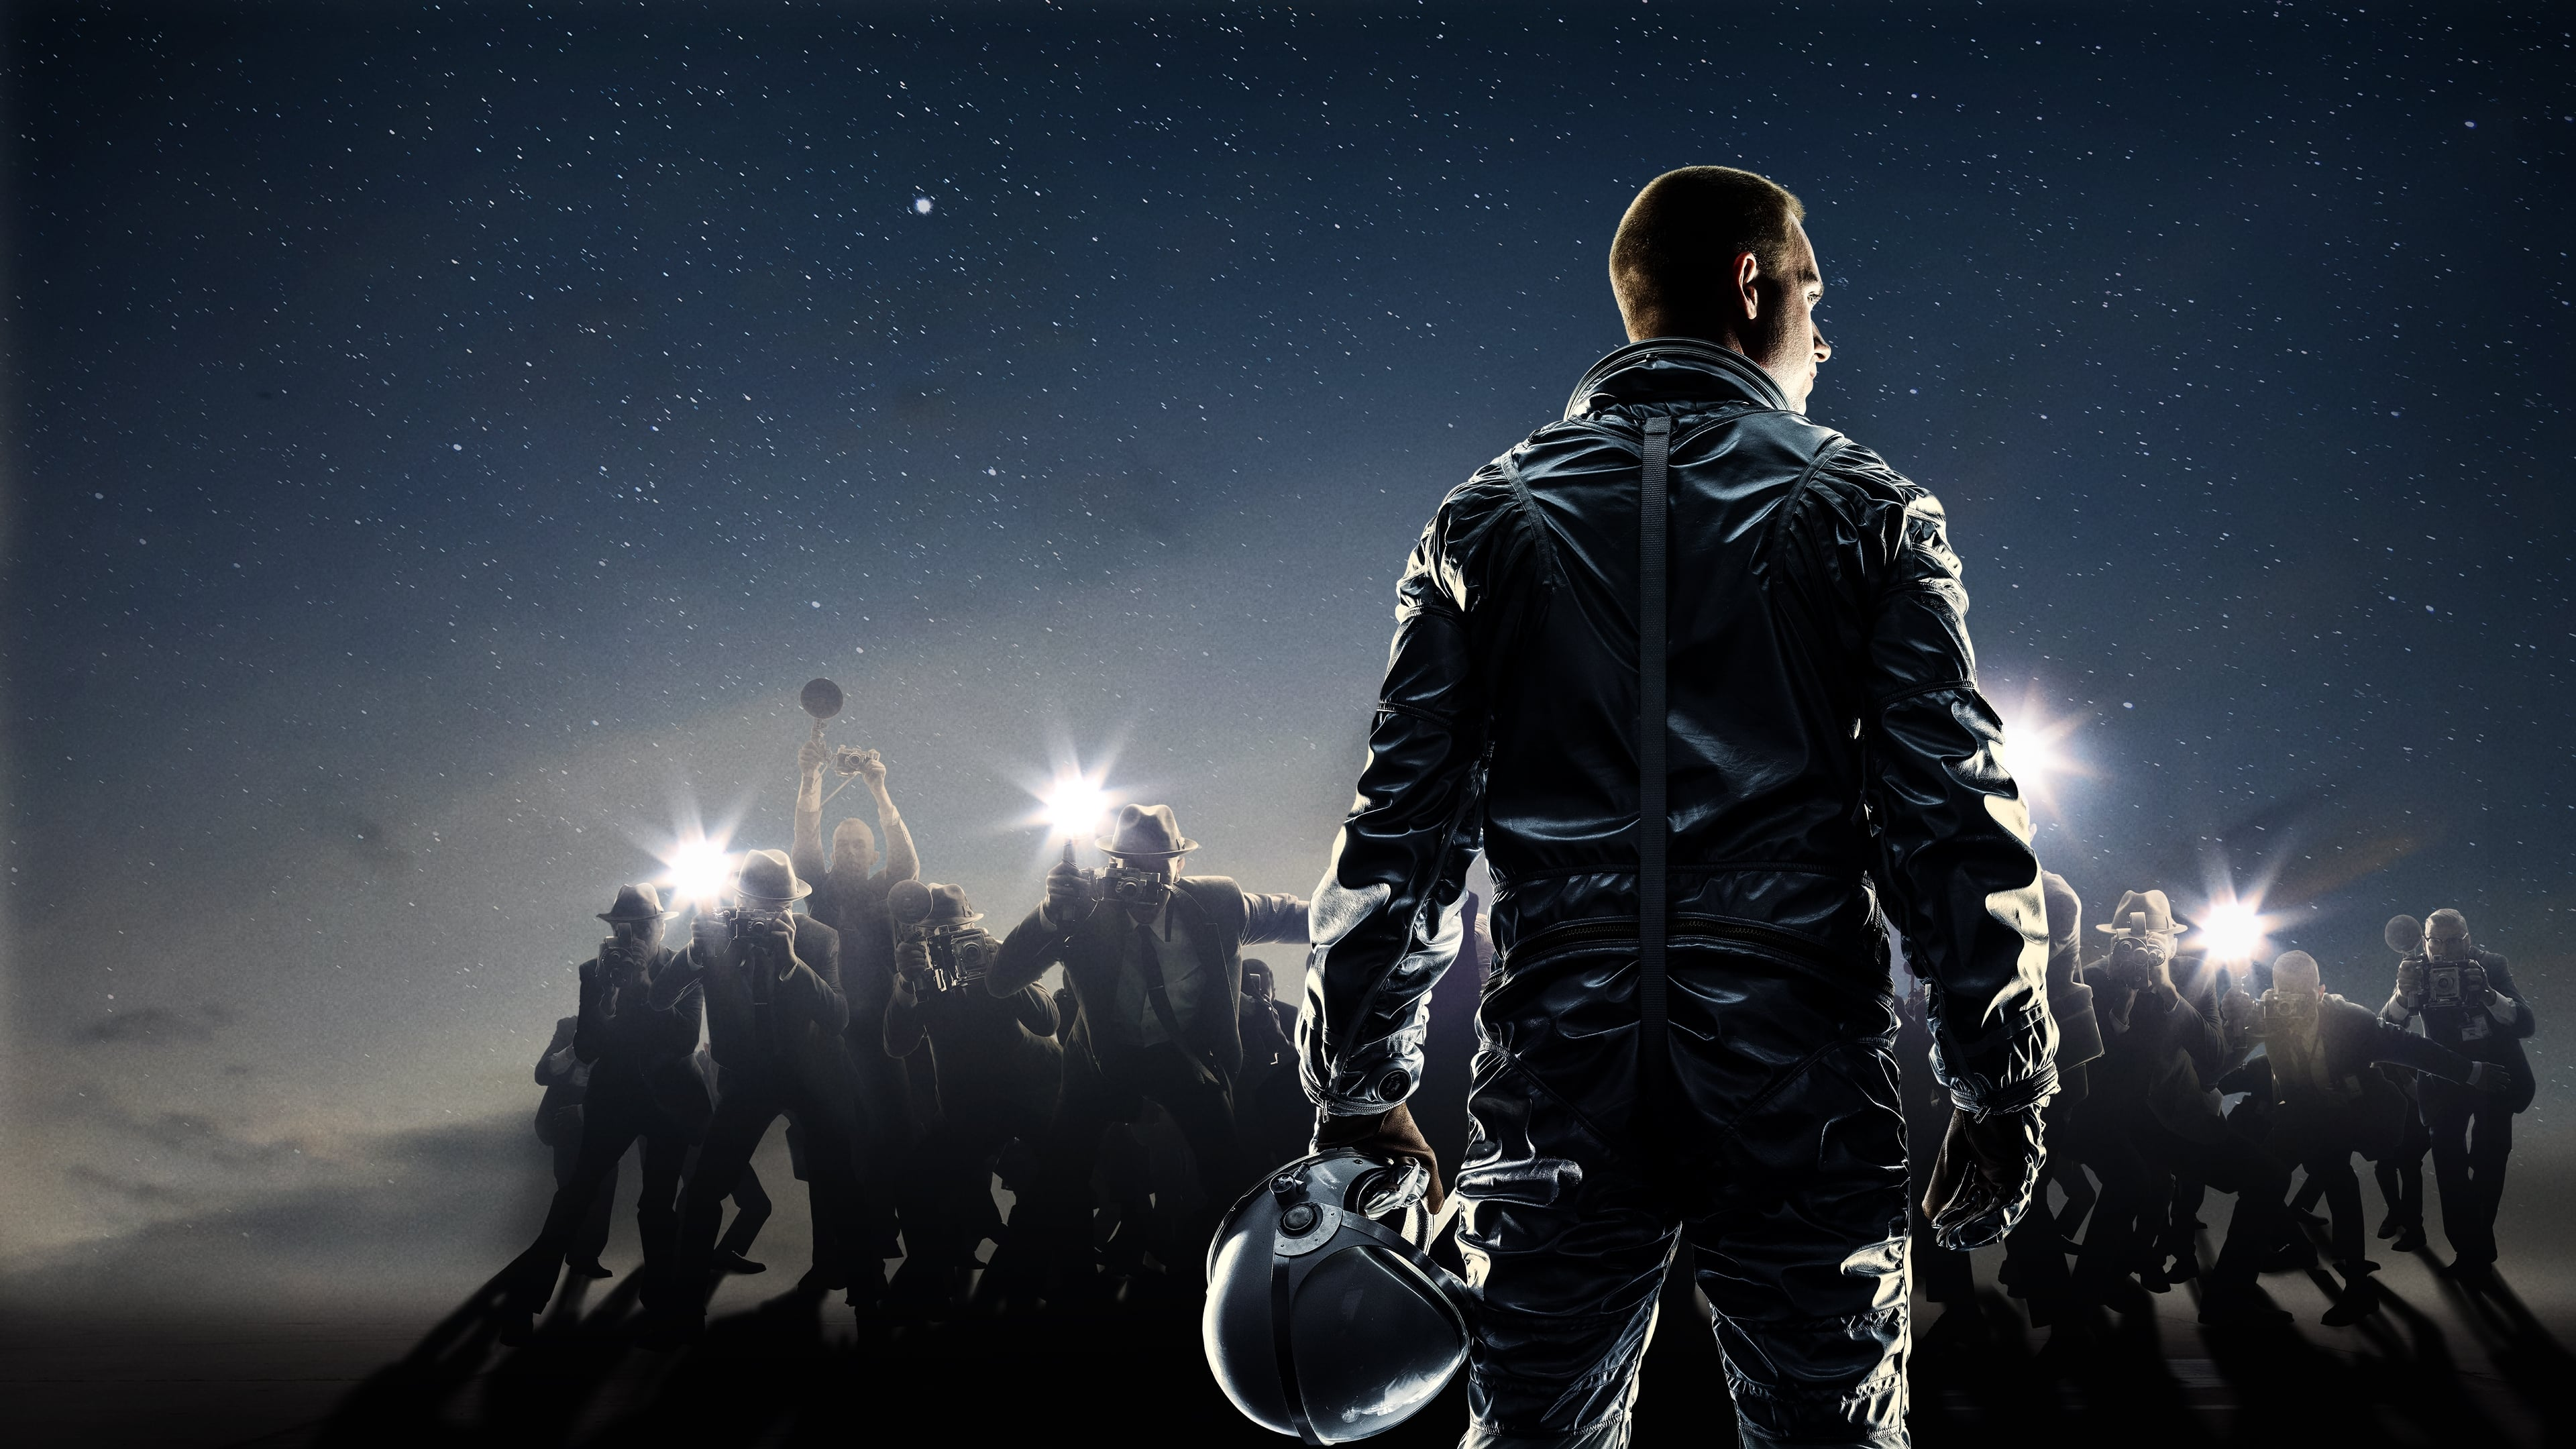 The Right Stuff verschijnt in de herfst op Disney+